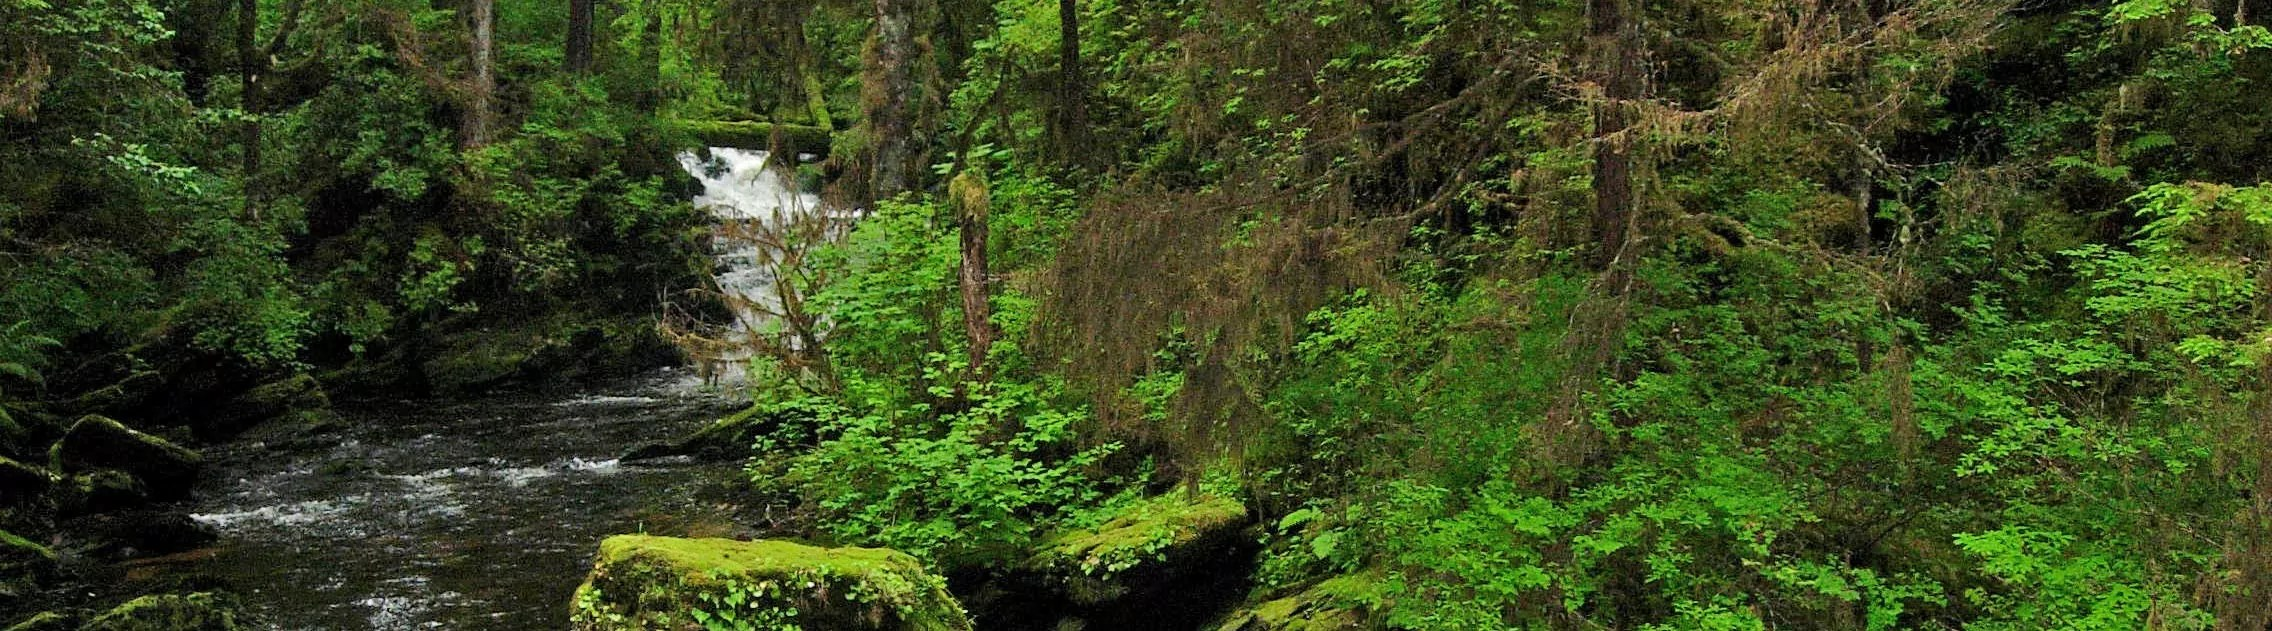 tongass-forest-donate-to-broads